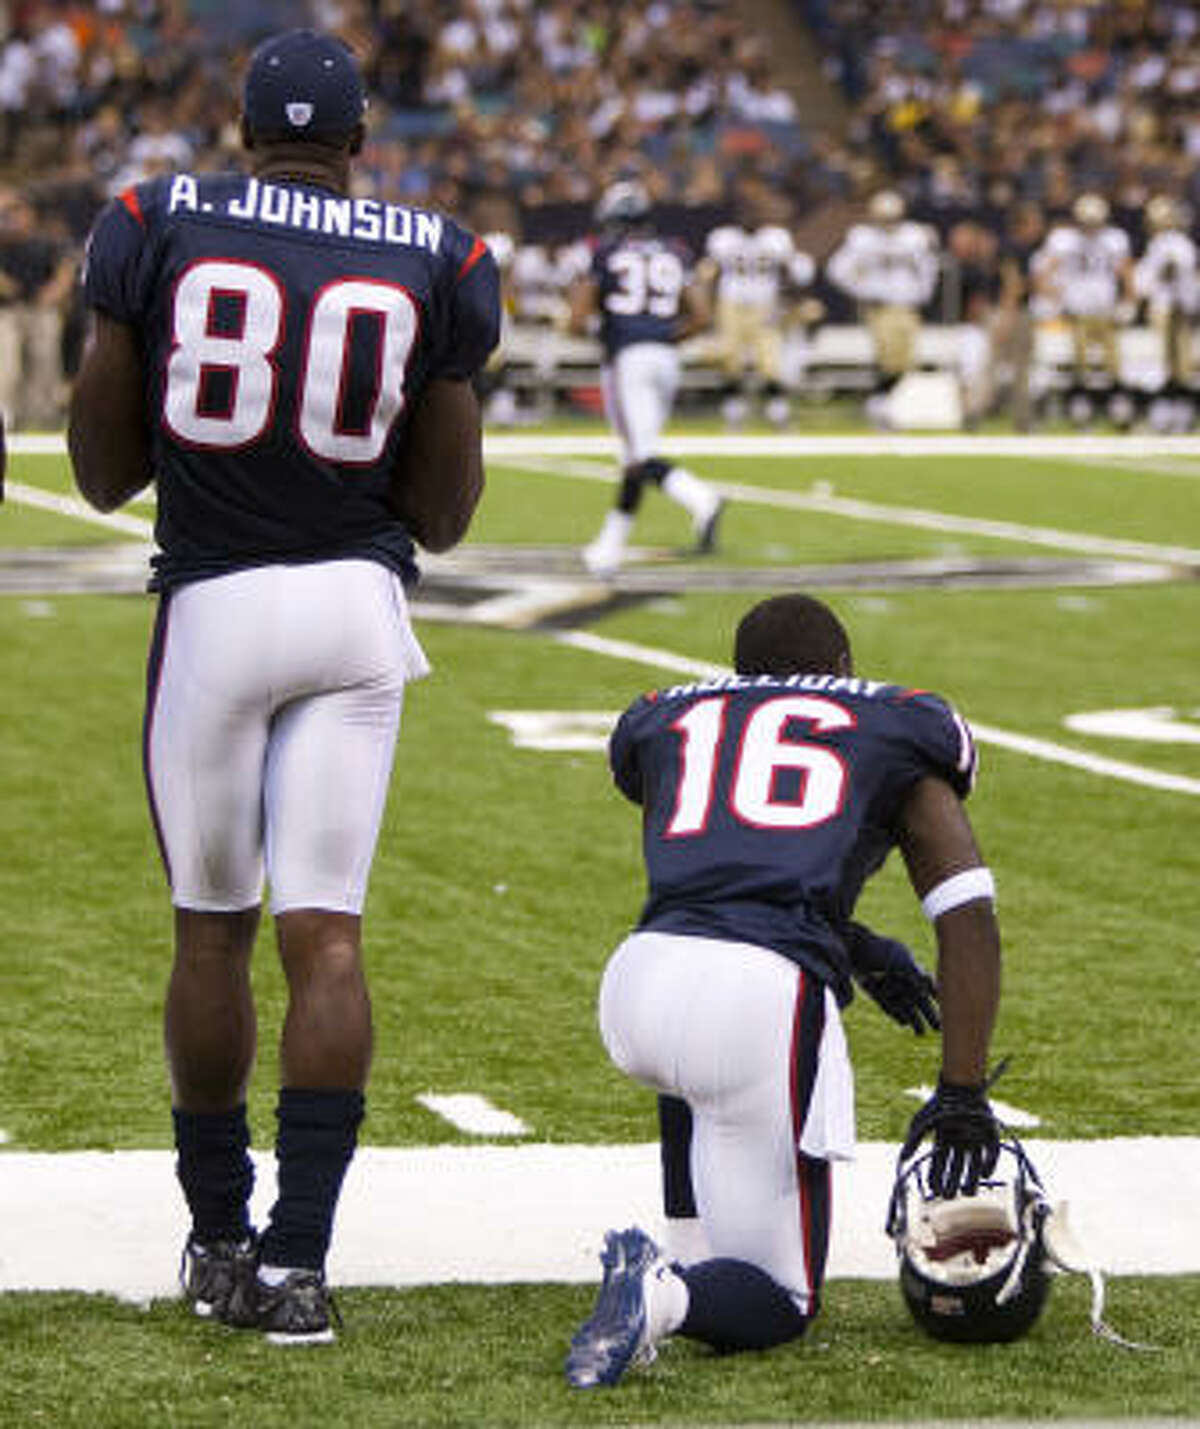 Texans retrun specialist Trindon Holliday kneels on the sidelines next to receiver Andre Johnson. Holliday was one of three players to fumble the football. Johnson had one catch for six yards.